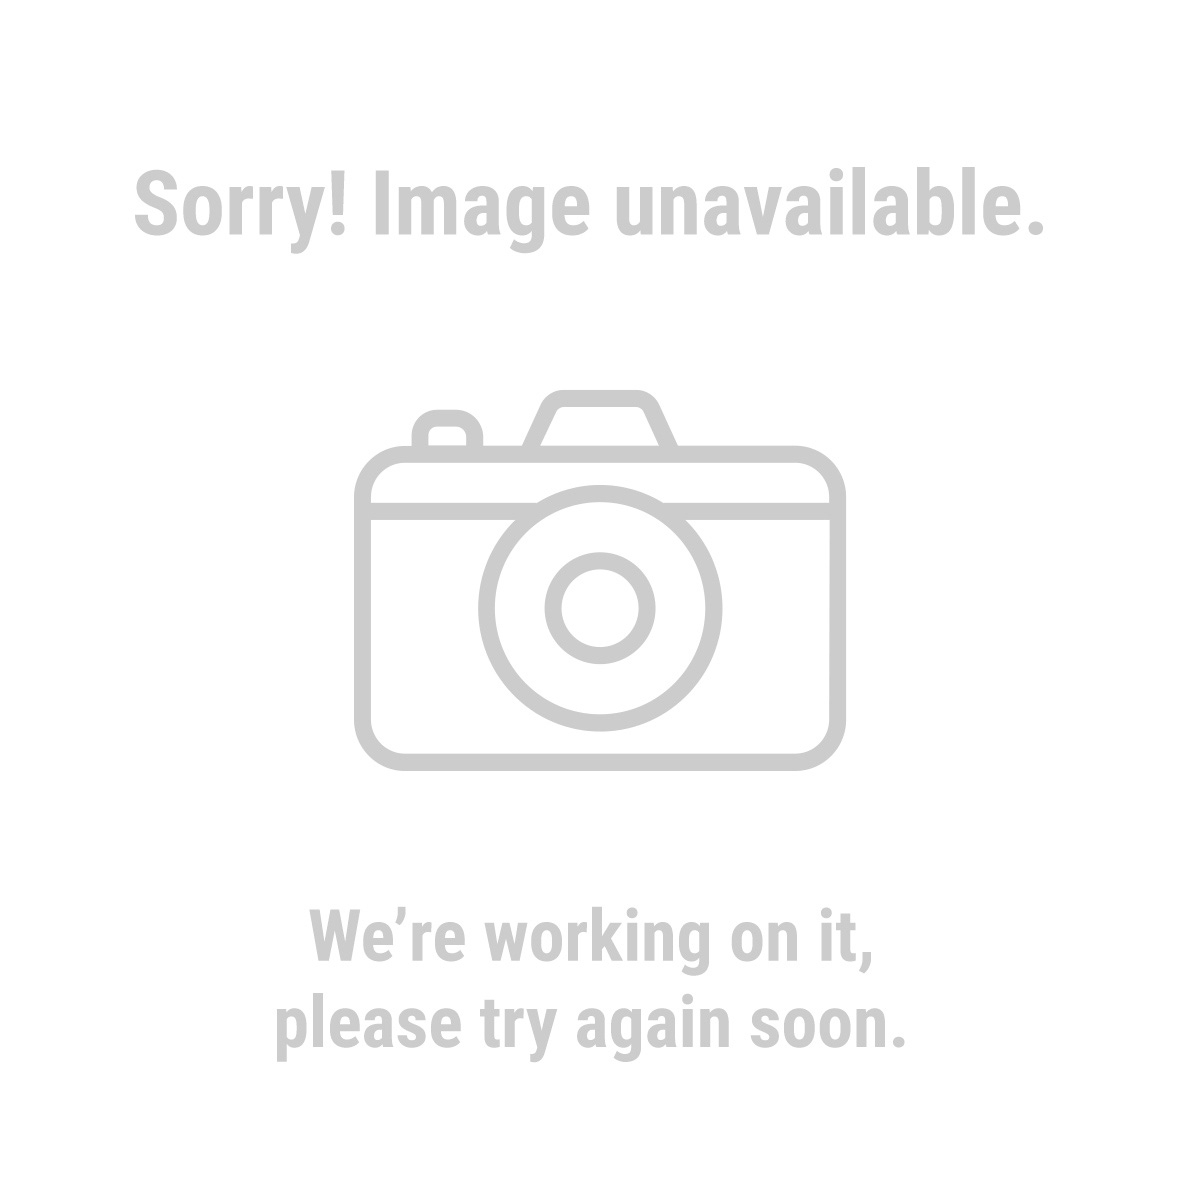 Hose Reel Cart Parts 250ft Hose Reel Cart With